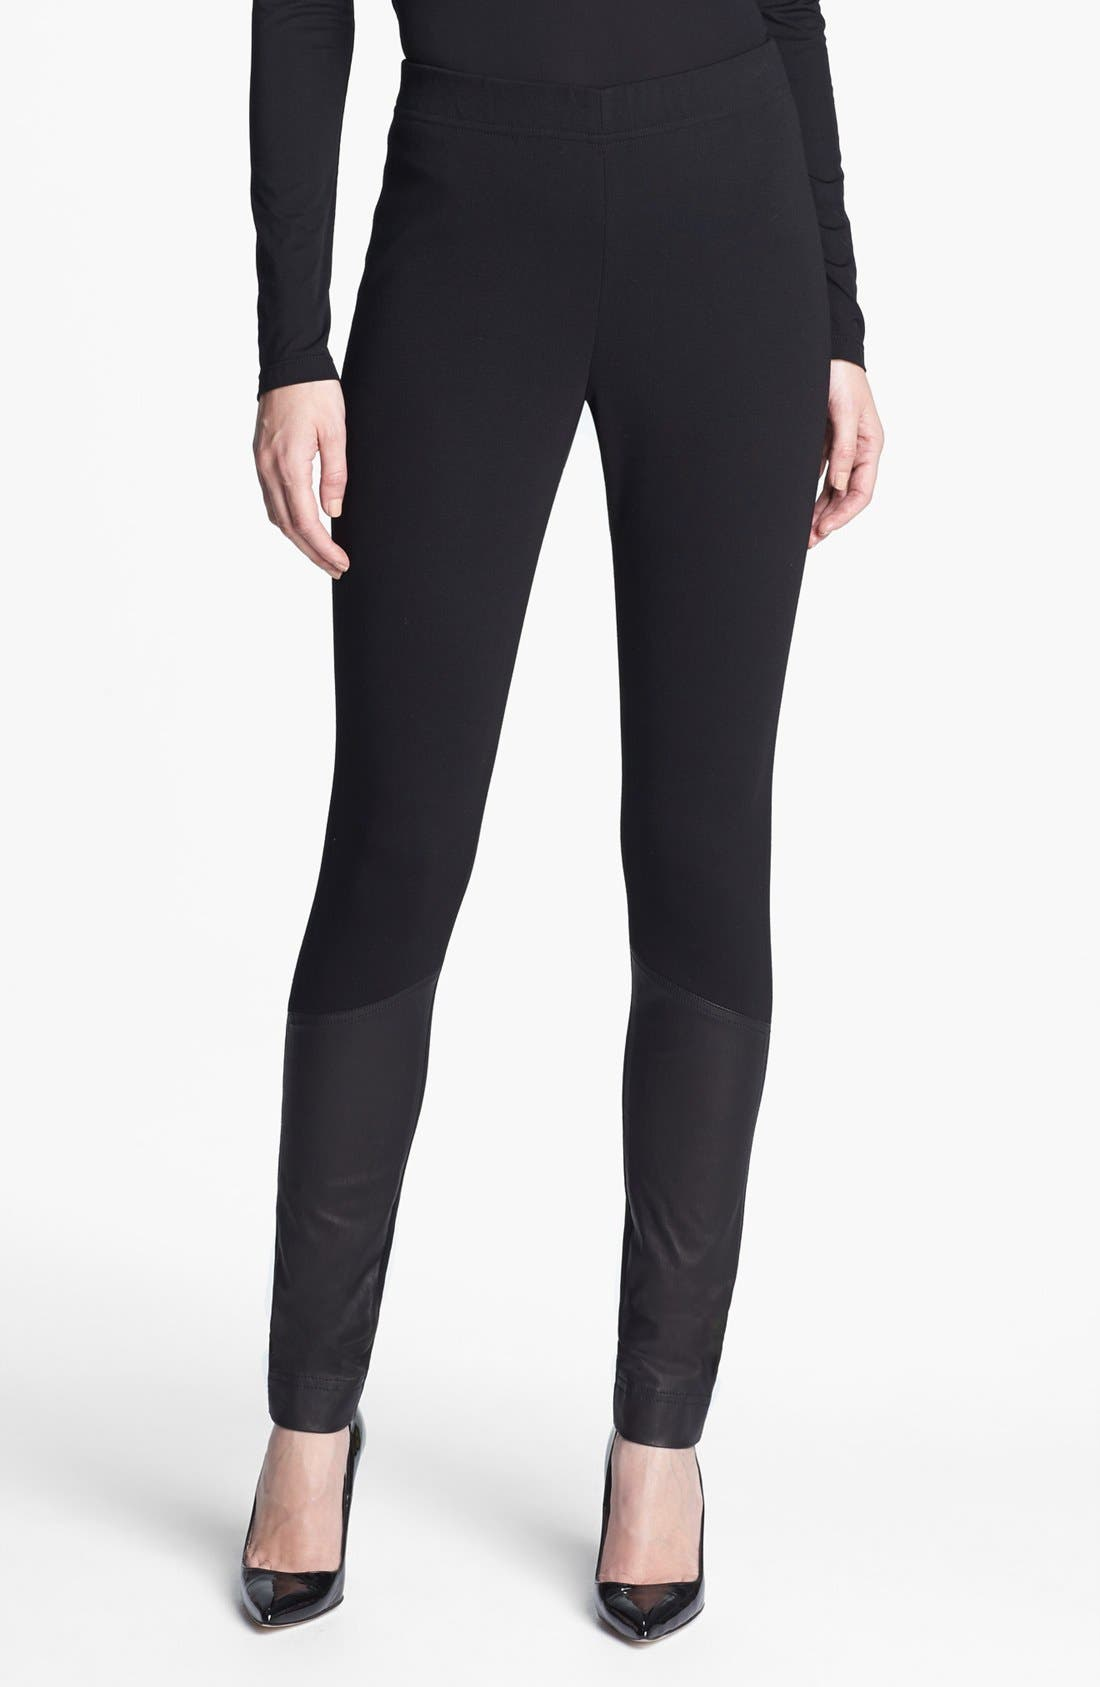 Alternate Image 1 Selected - St. John Collection Leather Accent Ponte Knit Leggings